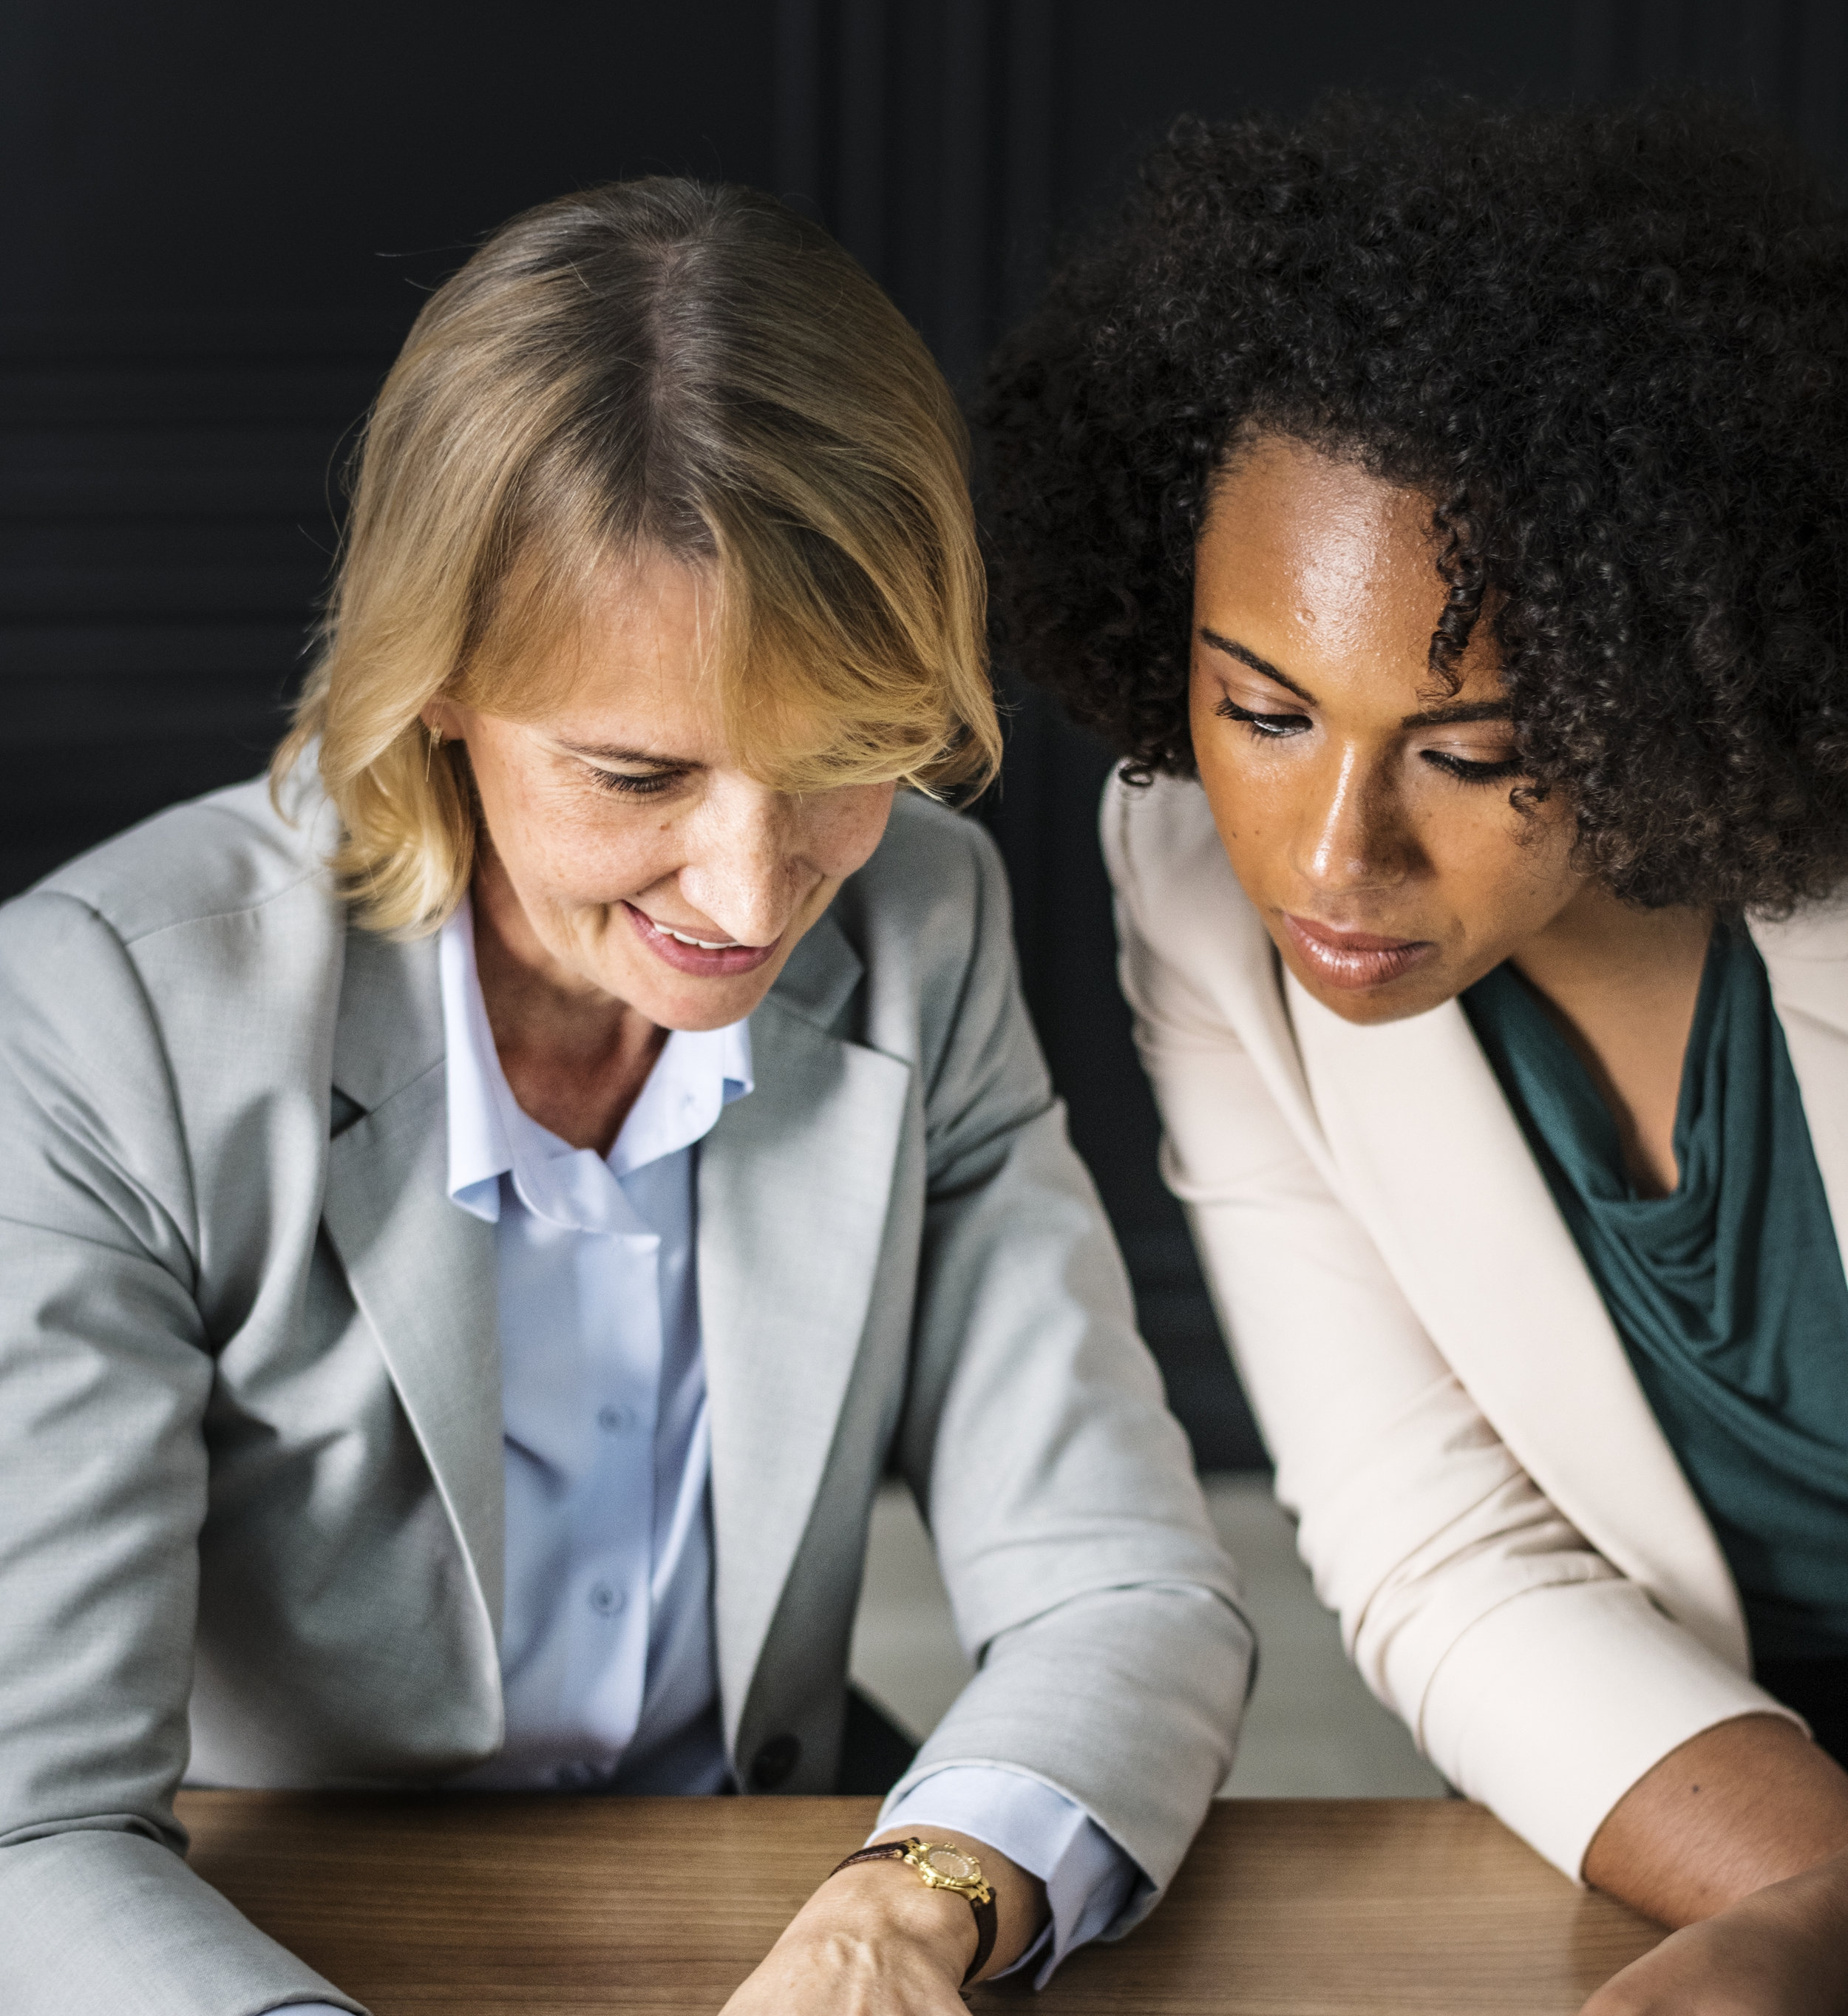 What is Pathspark Coaching? - At Pathspark, we believe coaching is a necessary tool to uncover and pursue your most meaningful career path.Our coaches will help you gain the confidence to ask for what you want and create a career plan that is right for you.